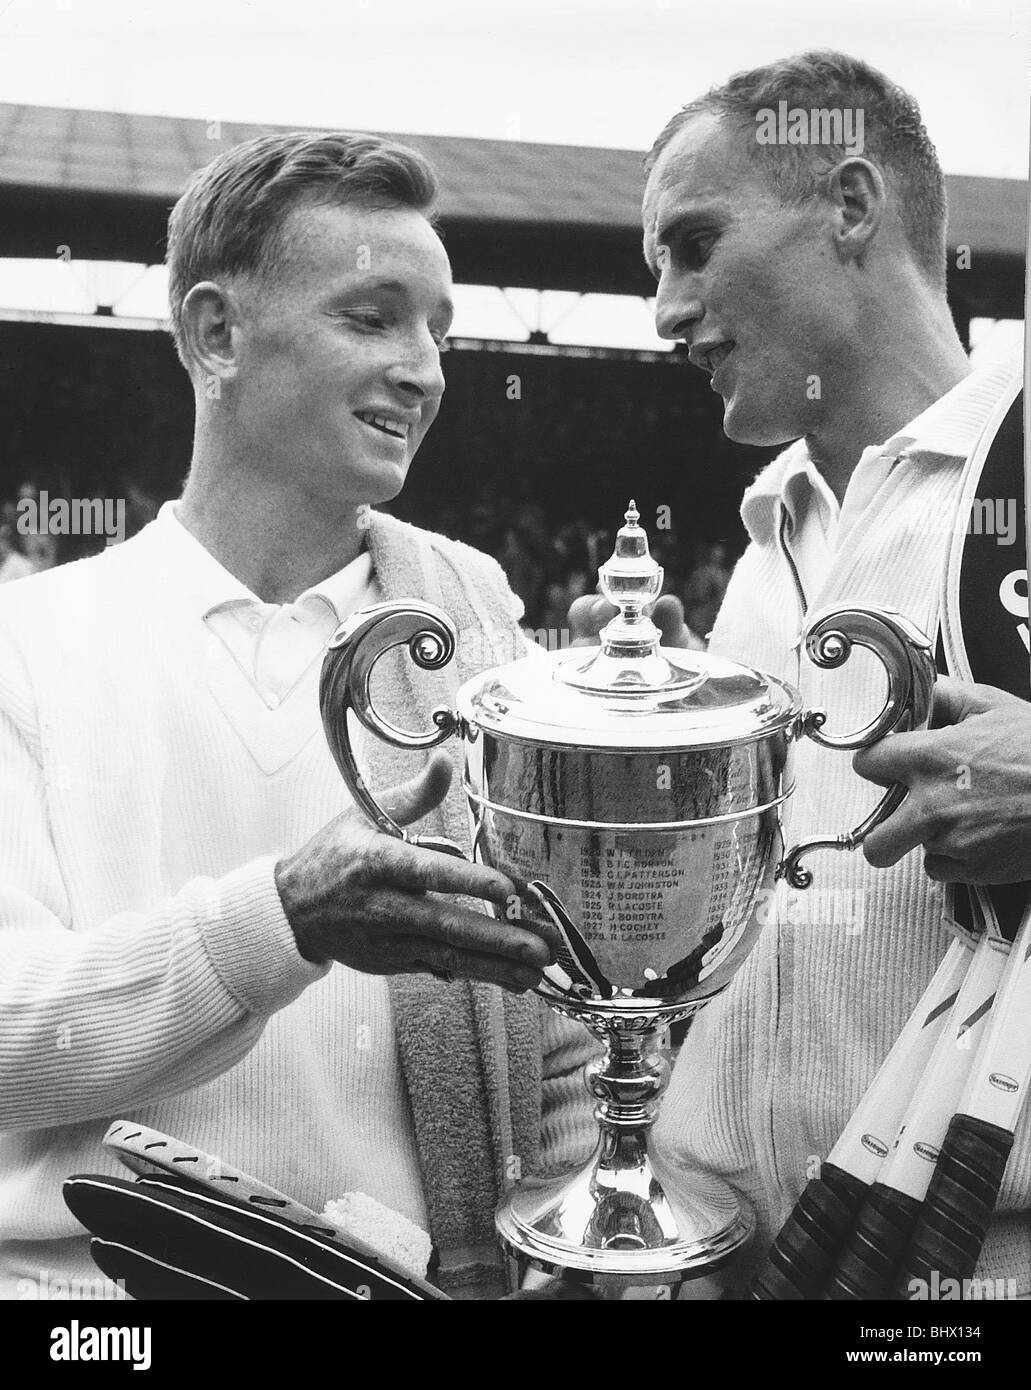 Neale Fraser wins mens singles title at Wimbledon 1960 with